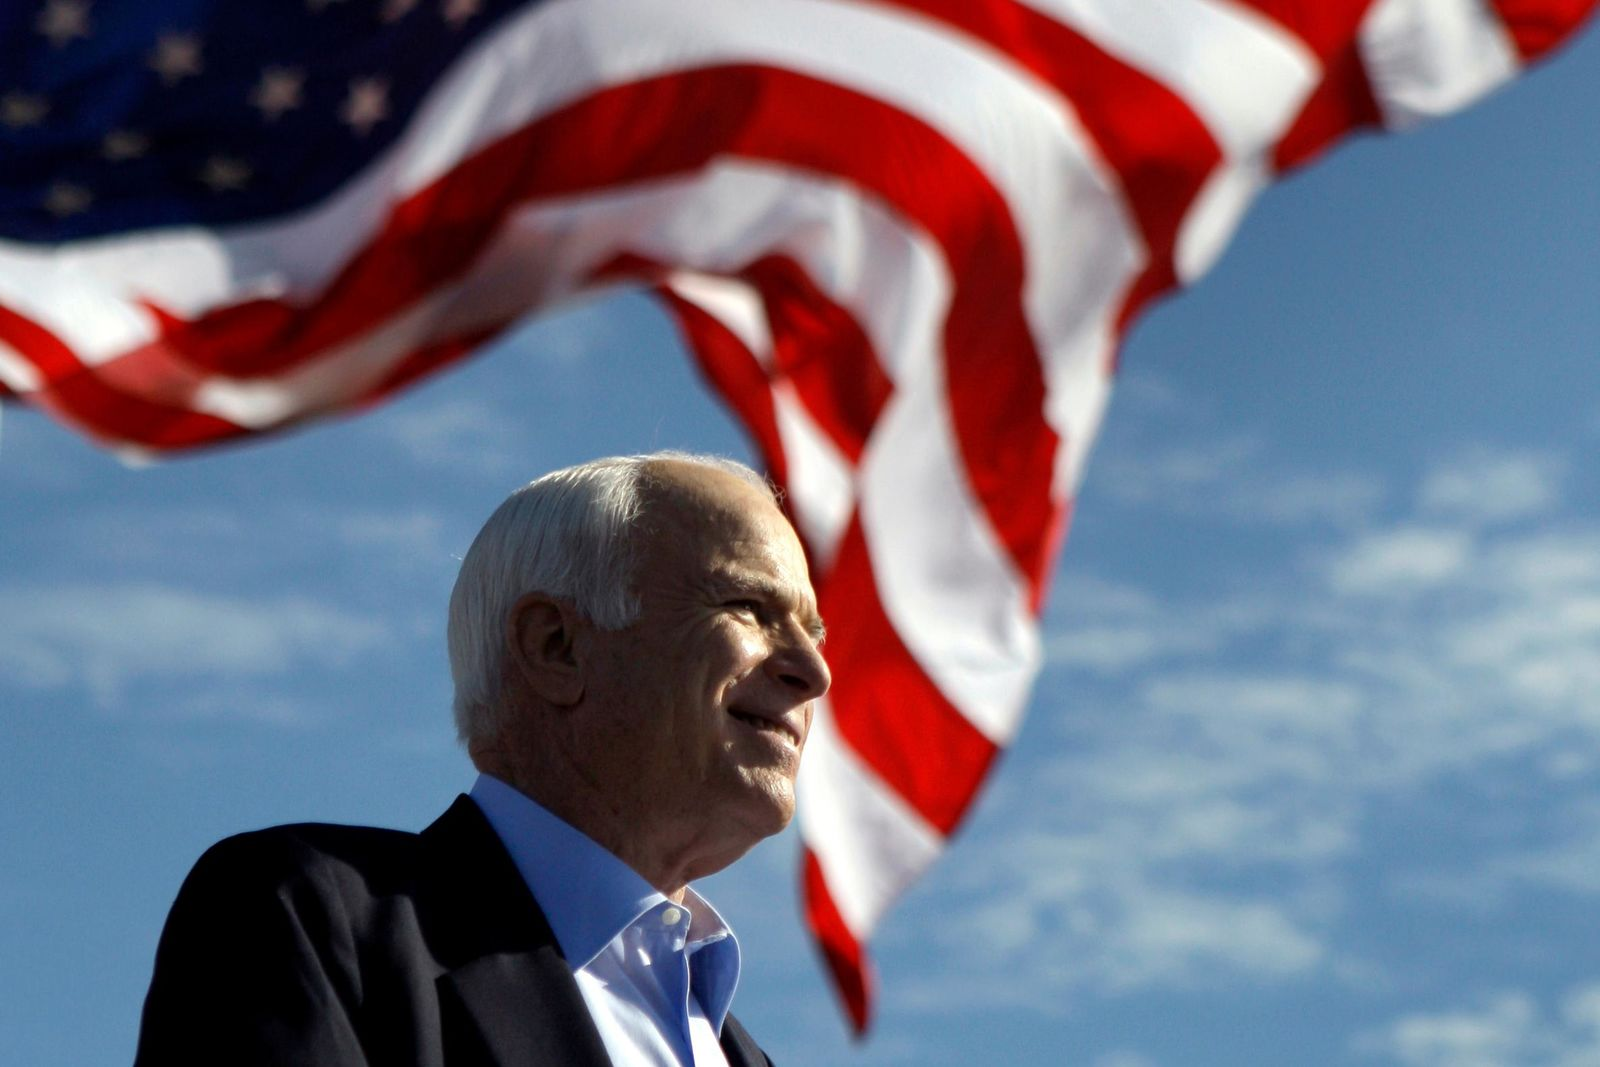 FILE - In this Nov. 3, 208 file photo, Republican presidential candidate Sen. John McCain, R-Ariz. speaks at a rally outside Raymond James Stadium in Tampa, Fla.{ } (AP Photo/Carolyn Kaster)